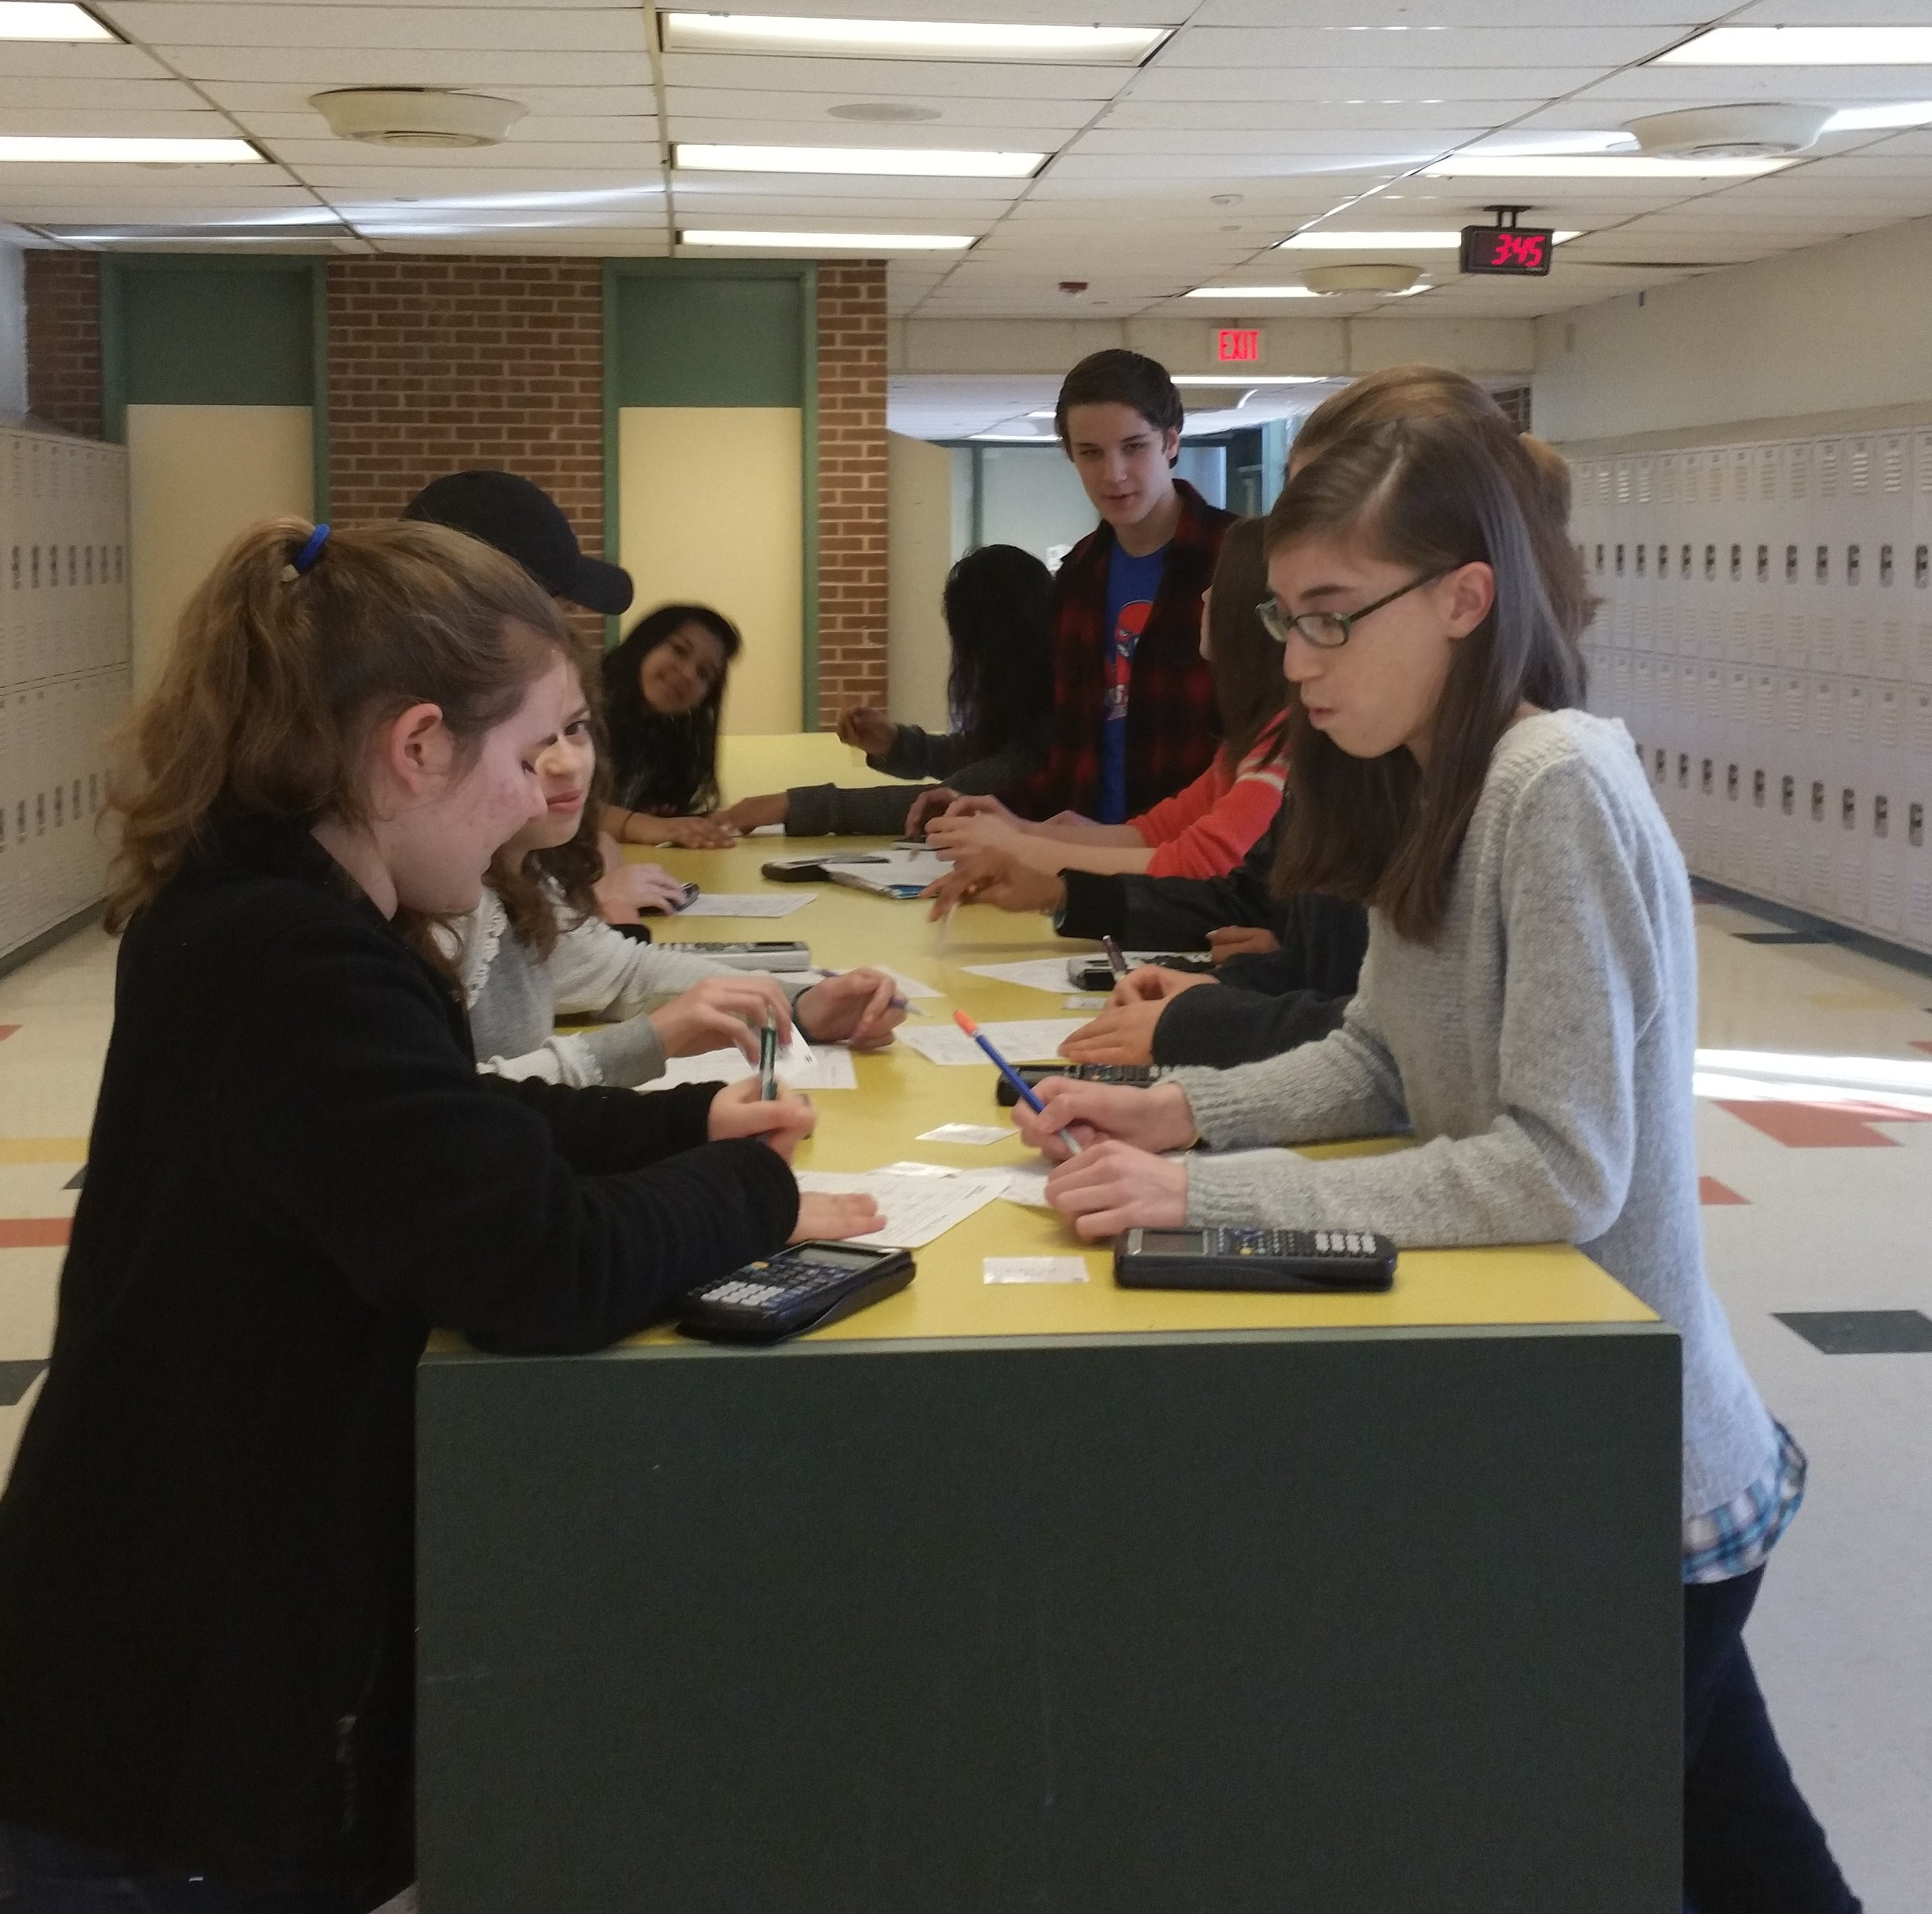 speed dating school activity for classroom